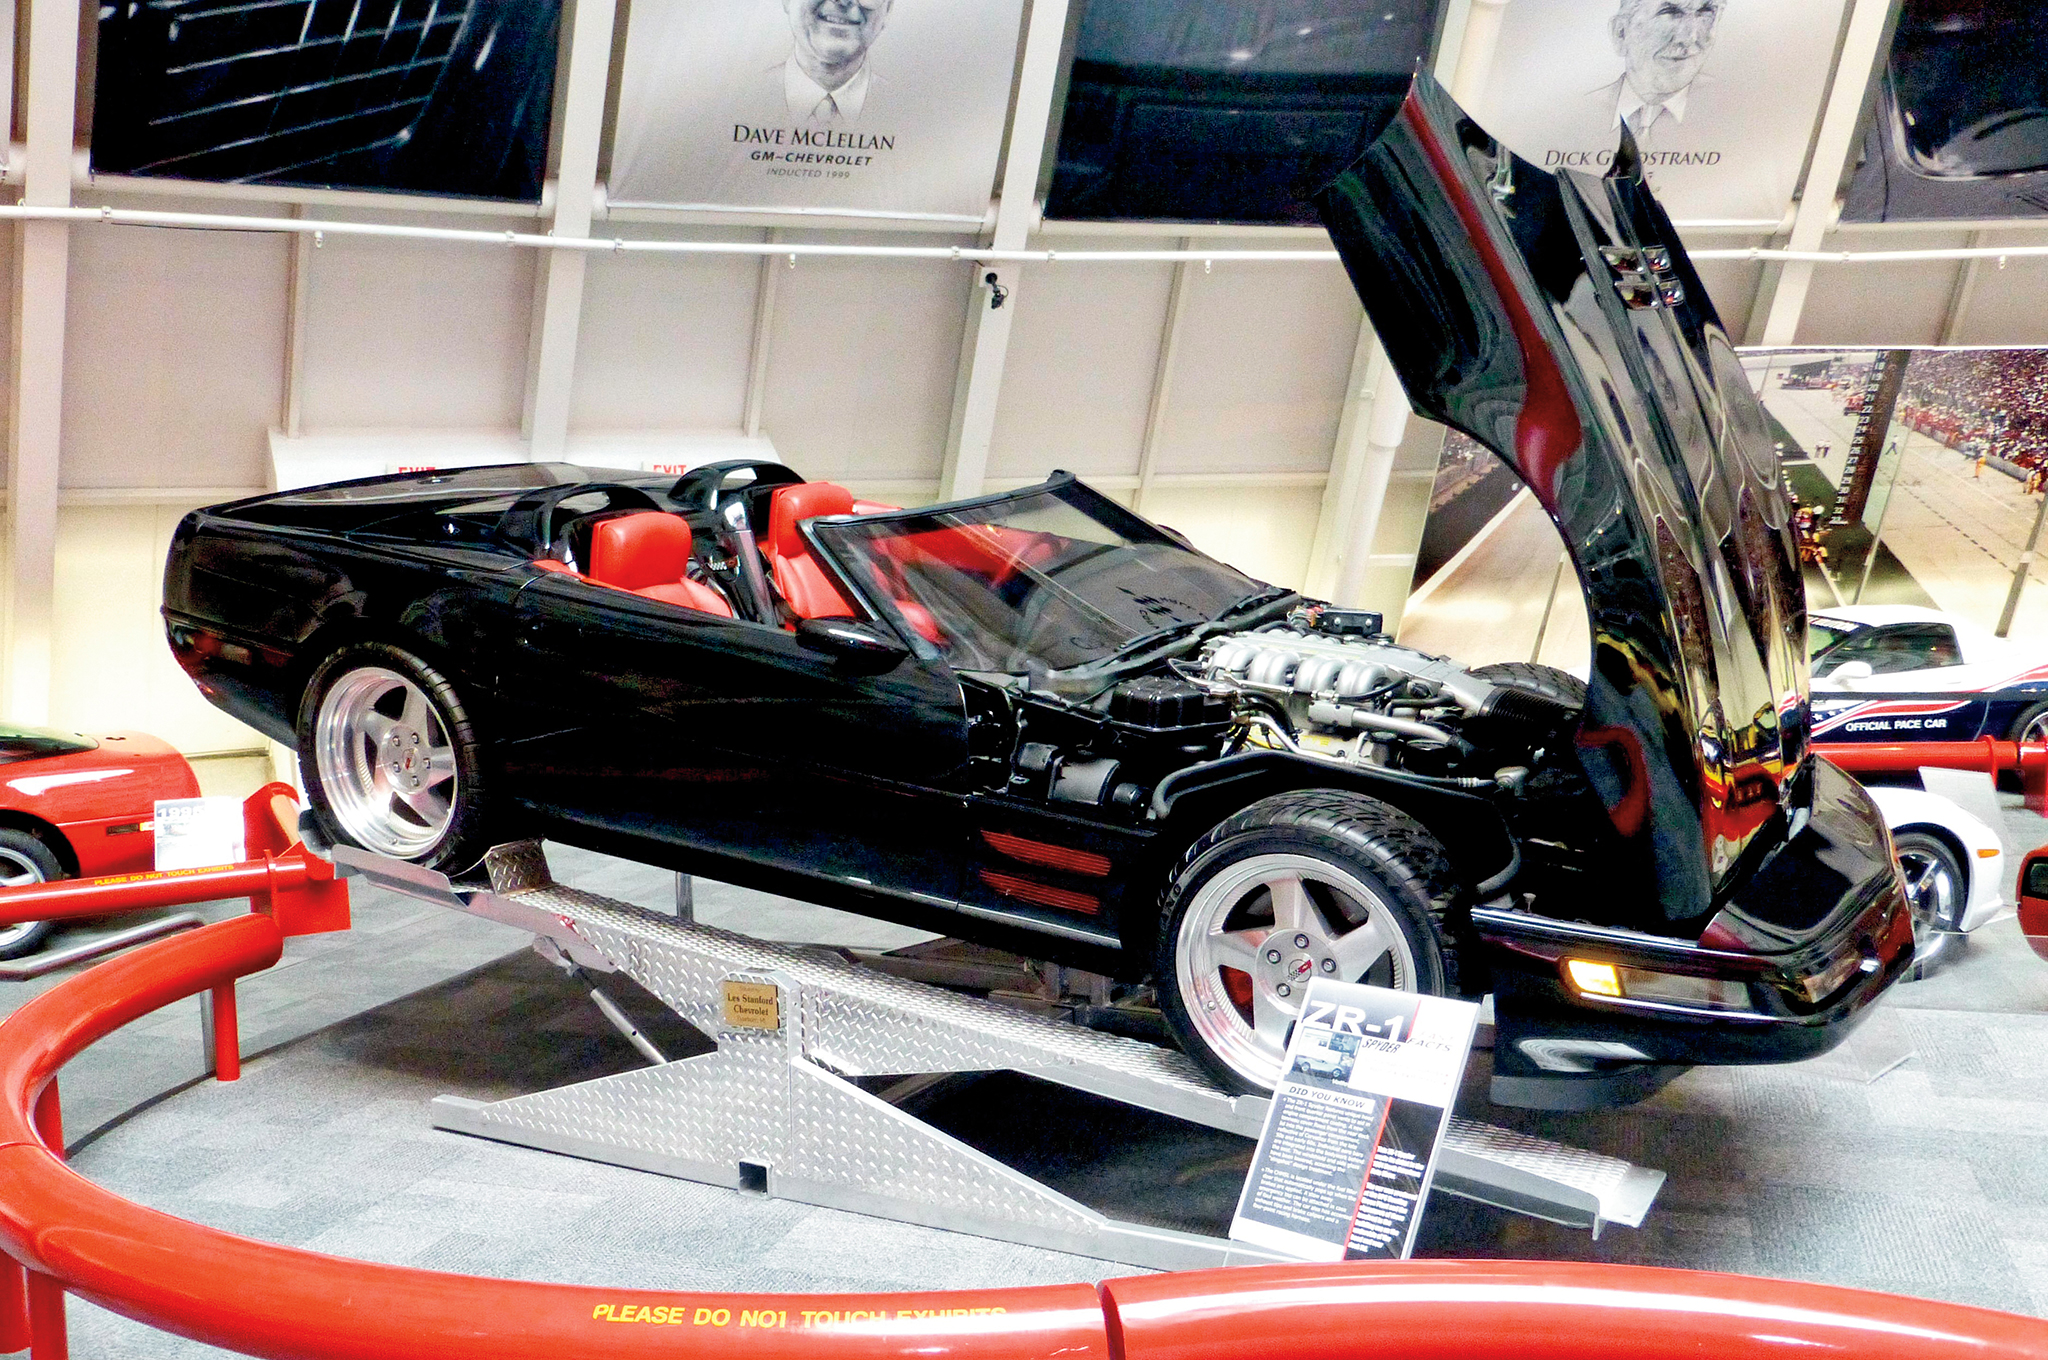 The assembly plant repainted the Spyder black and added a Torch Red interior. This is how it looked when it was displayed while on loan from Chevrolet. The ZR-1 engine remained stock.